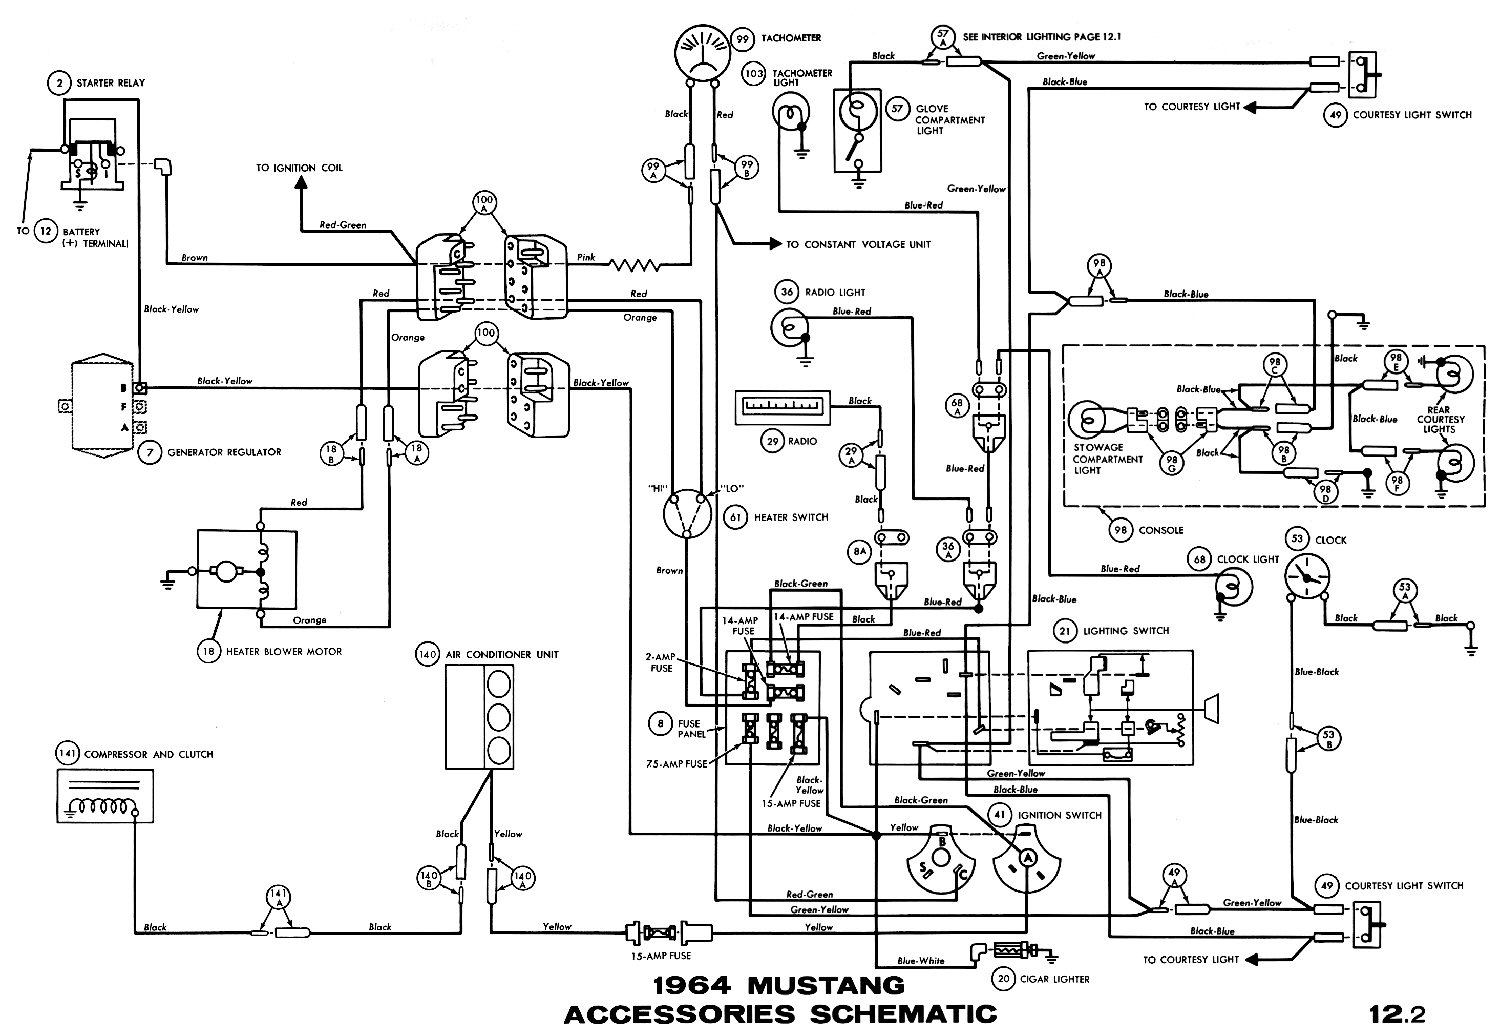 1964m wiring diagram for 1970 ford mustang readingrat net 1970 mustang mach 1 wiring diagram at gsmx.co